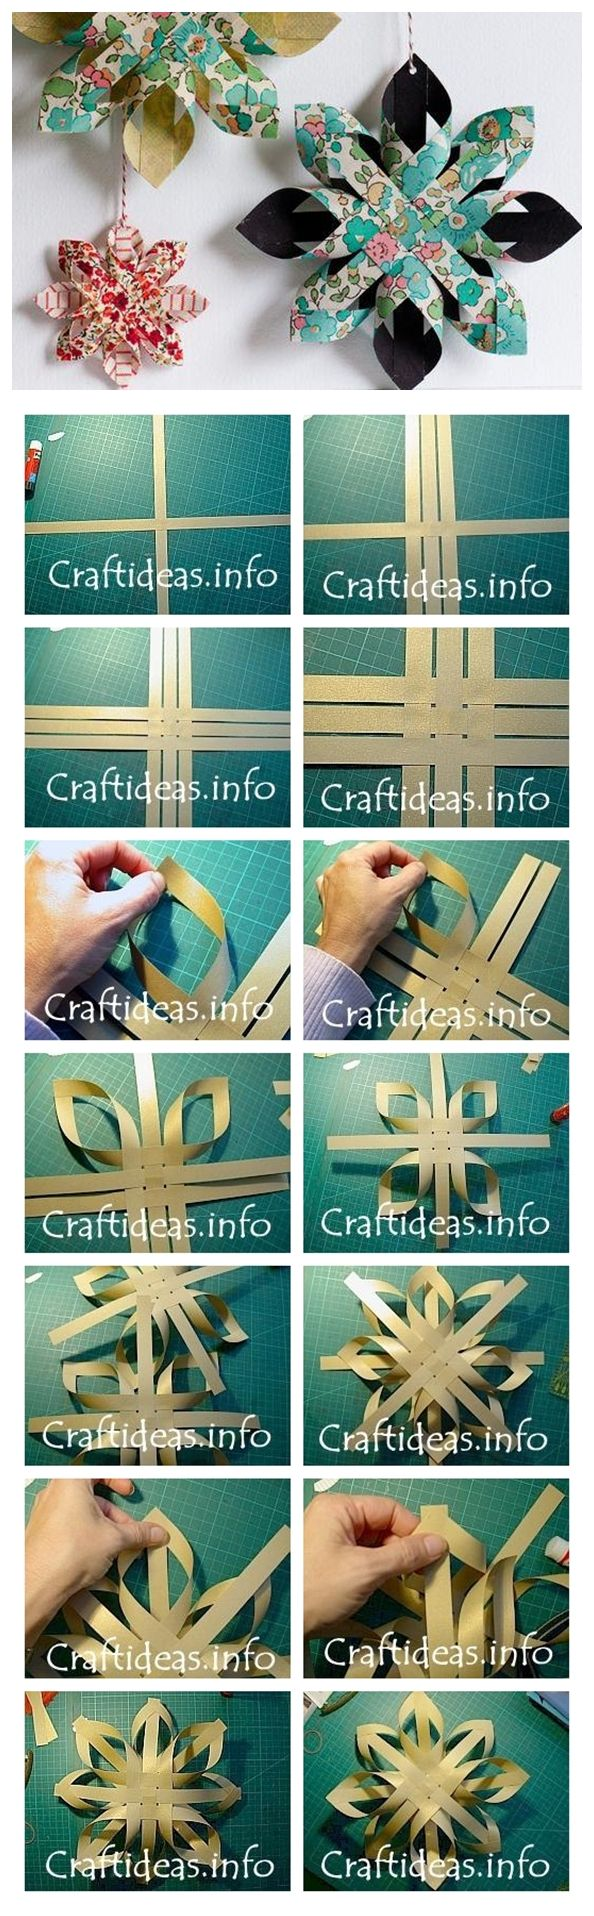 How to make paper star DIY step by step tutorial